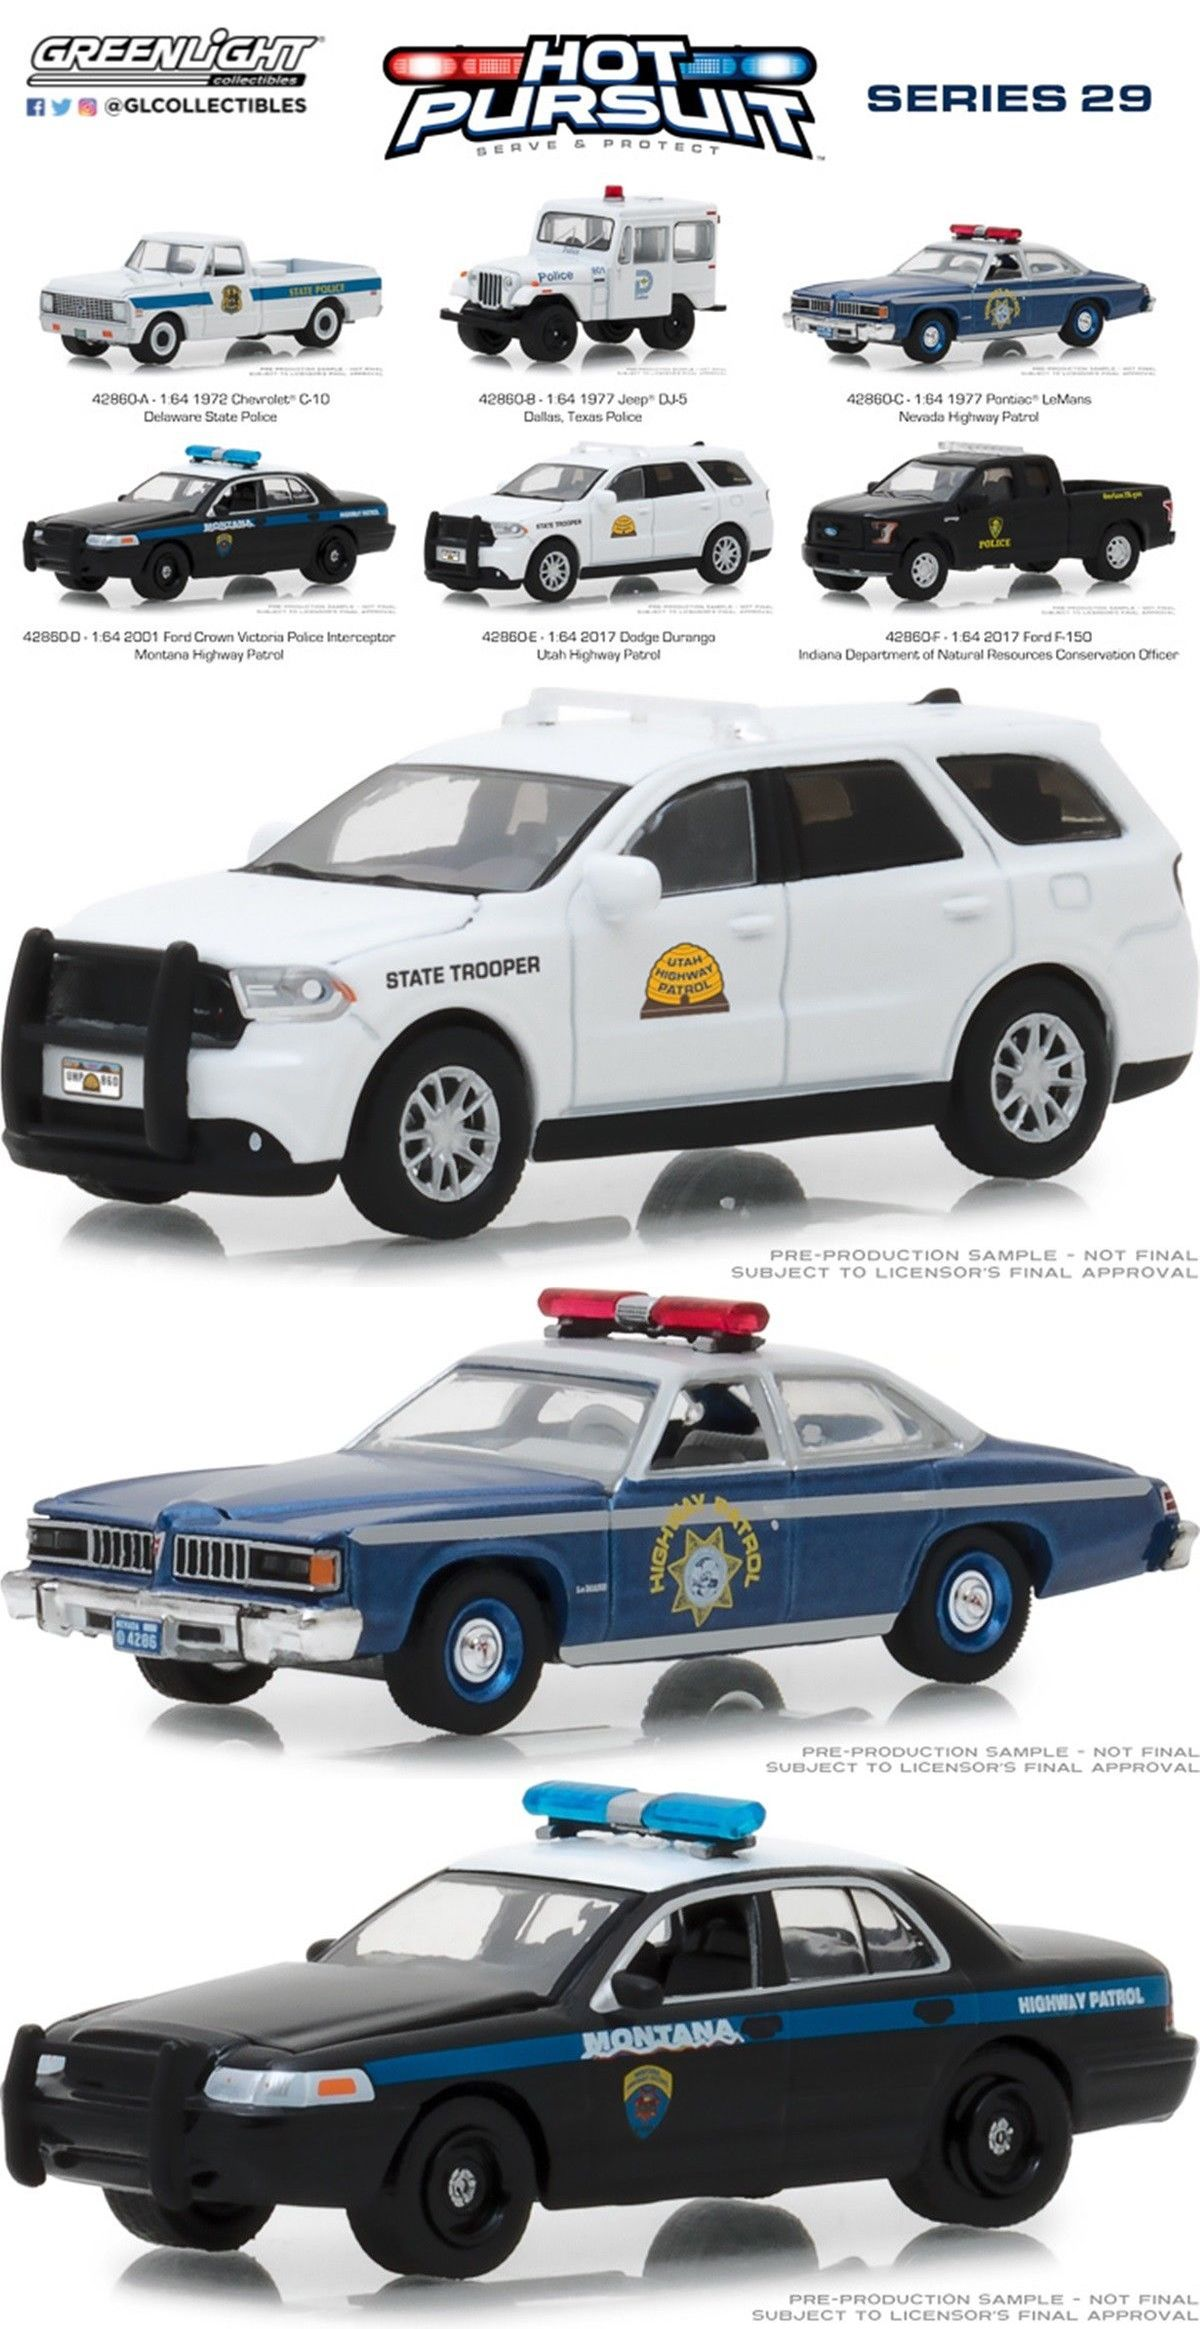 Greenlight 1 64 Hot Pursuit Series 29 Six Model Set Utah Nevada Dallas 42860 Hot Wheels Six Models Pontiac Lemans